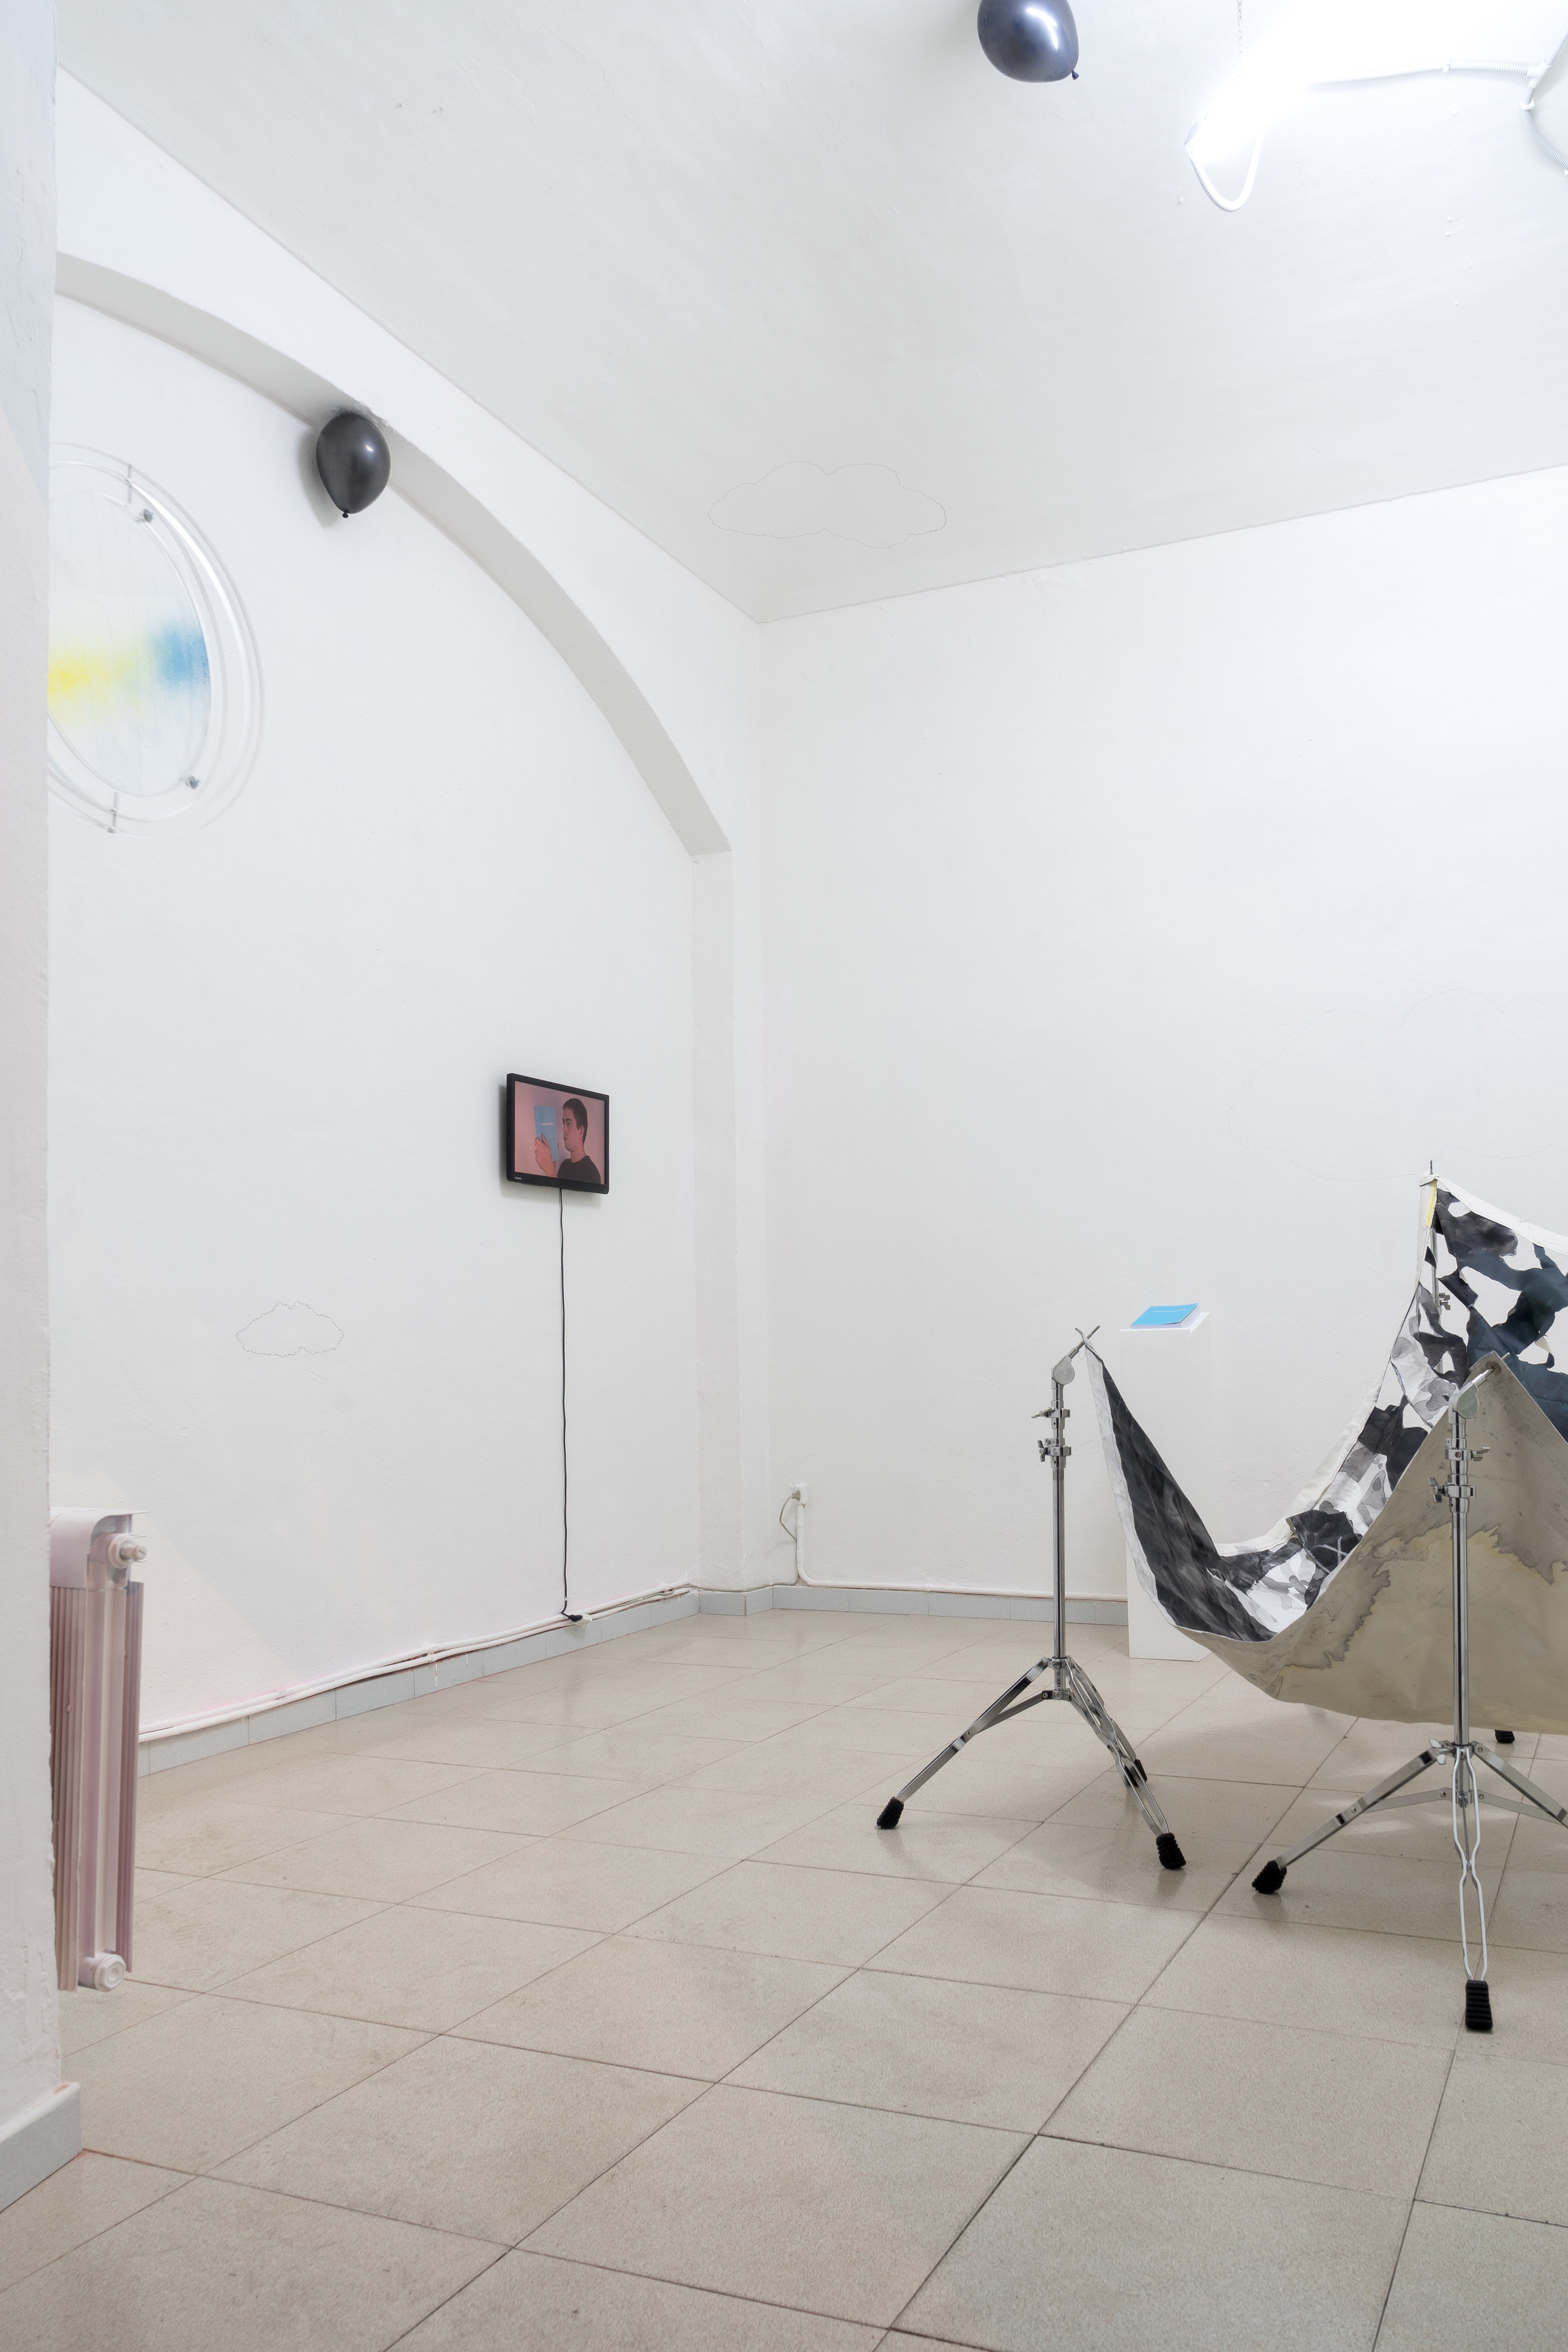 the-theory-of-clouds-spaziobuonasera-45-installation-view.jpg